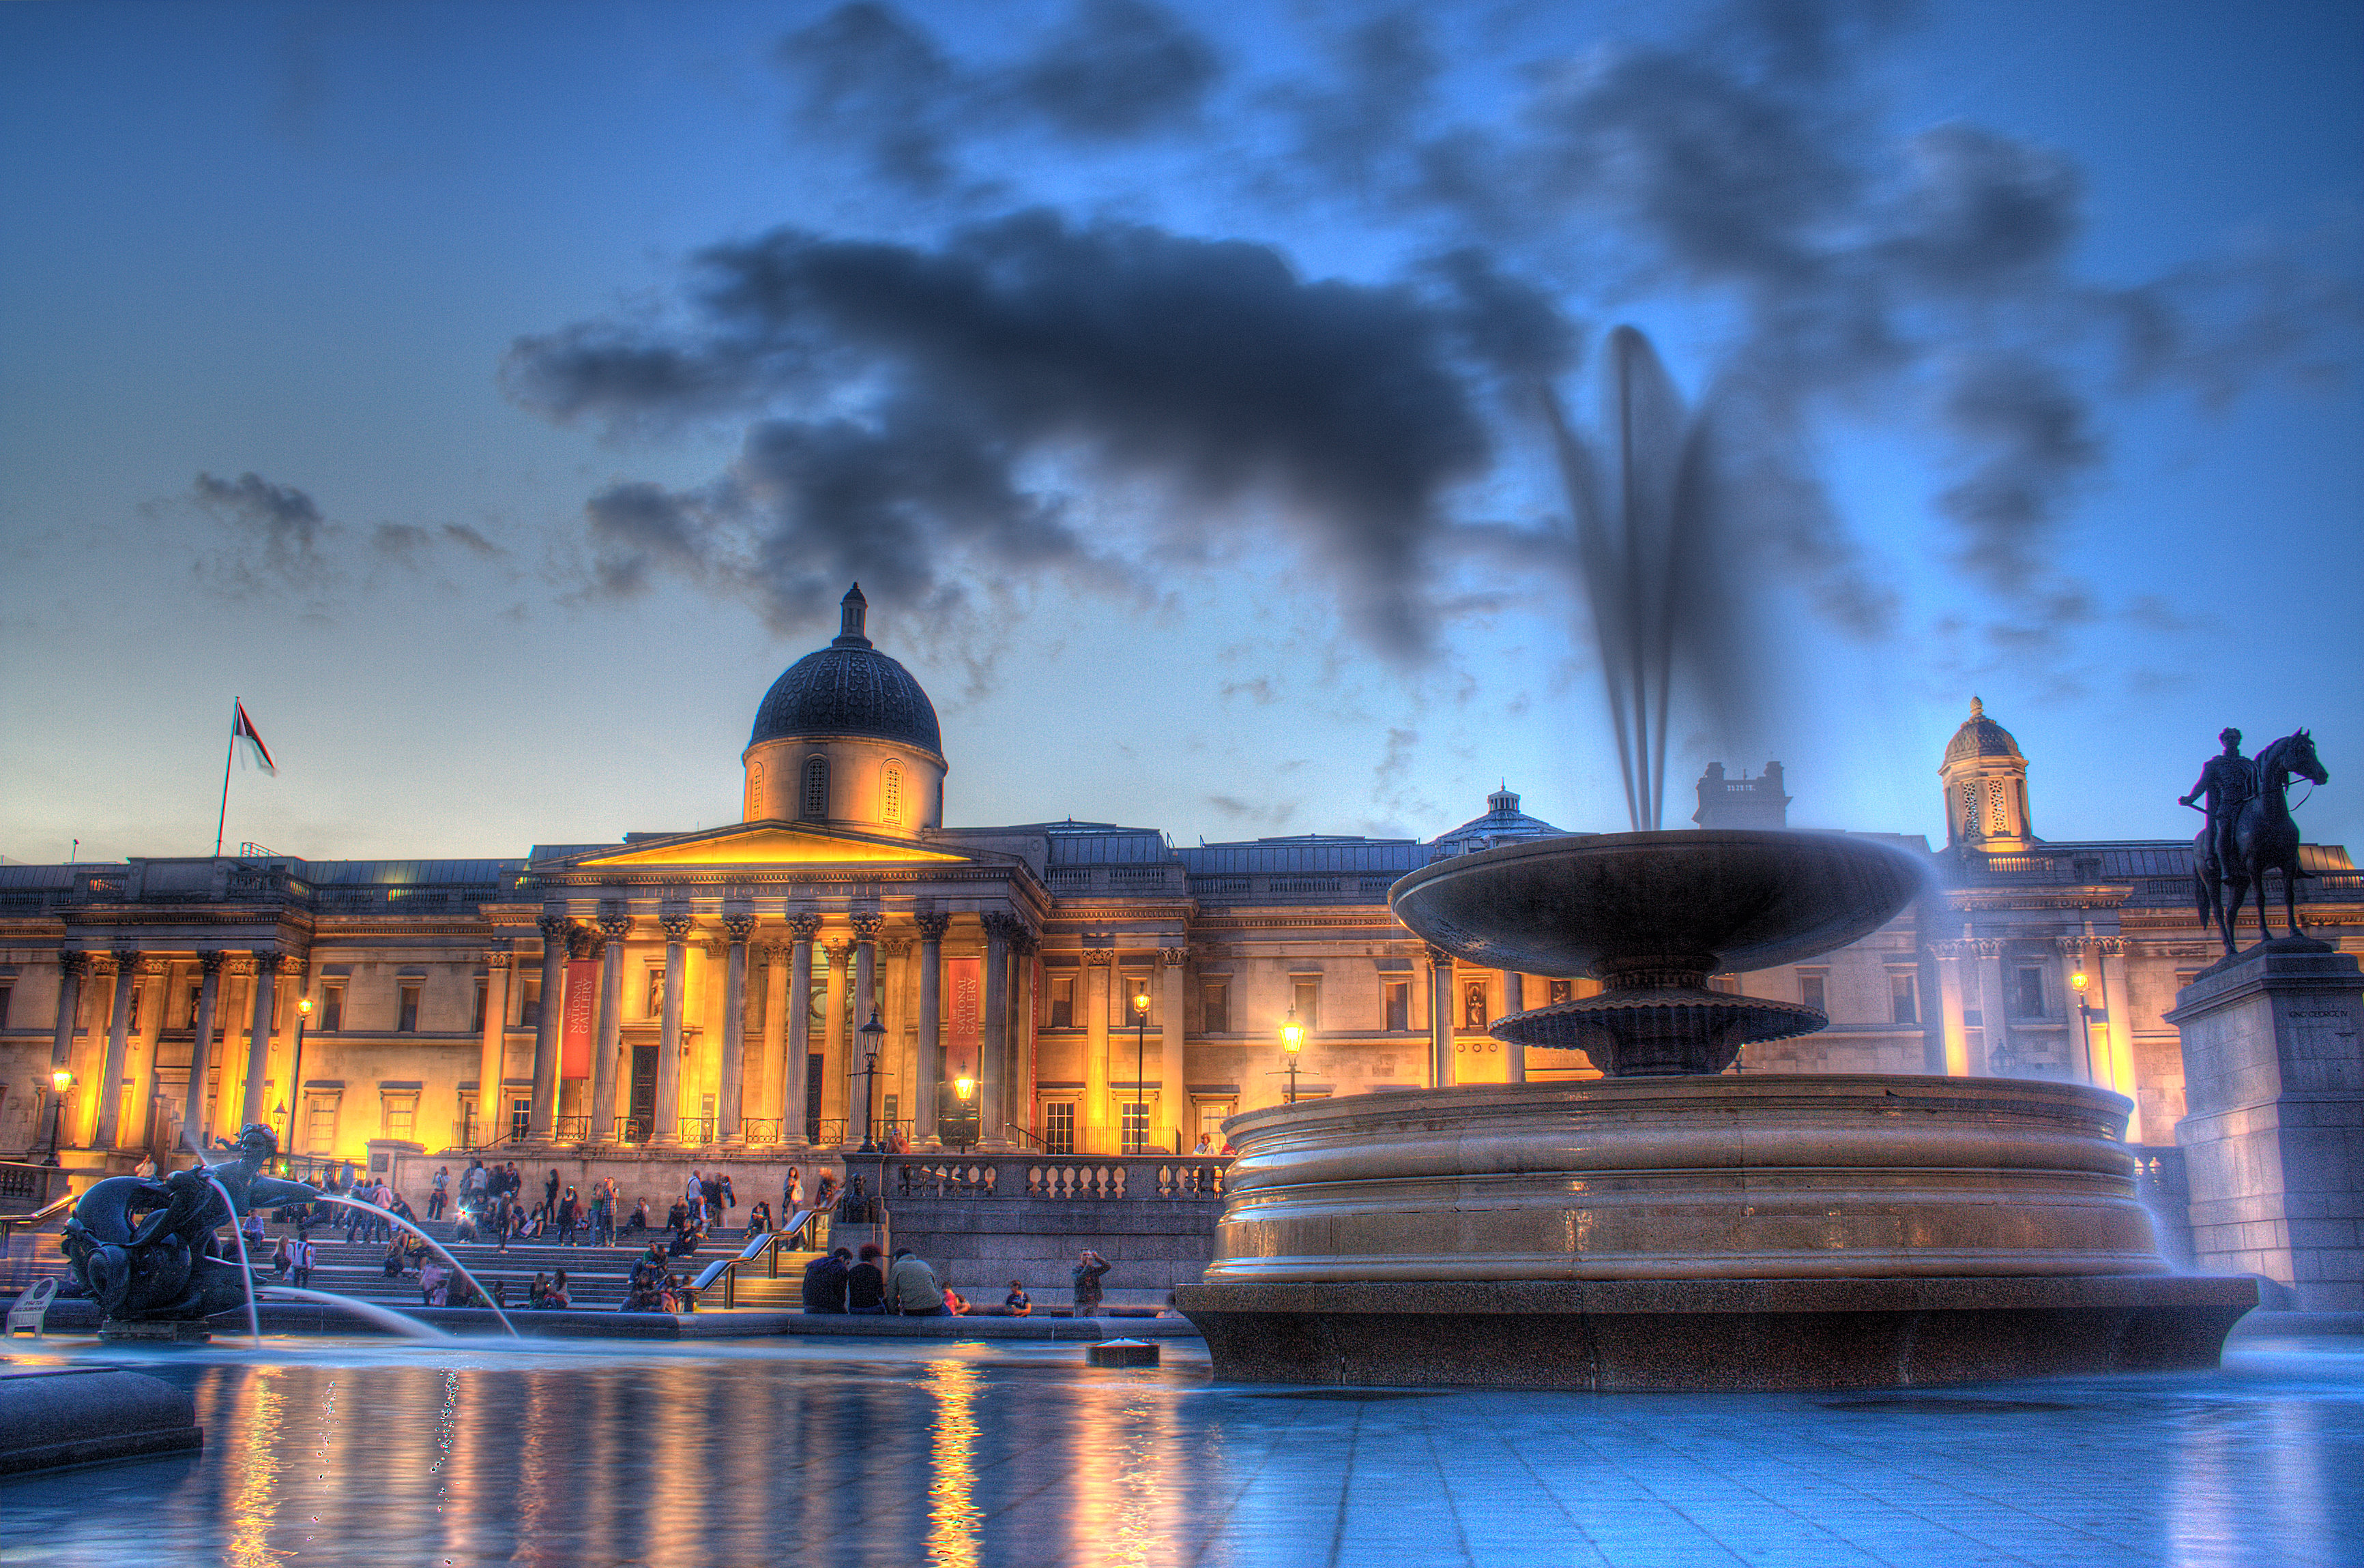 National Gallery - Museum in London - Thousand Wonders